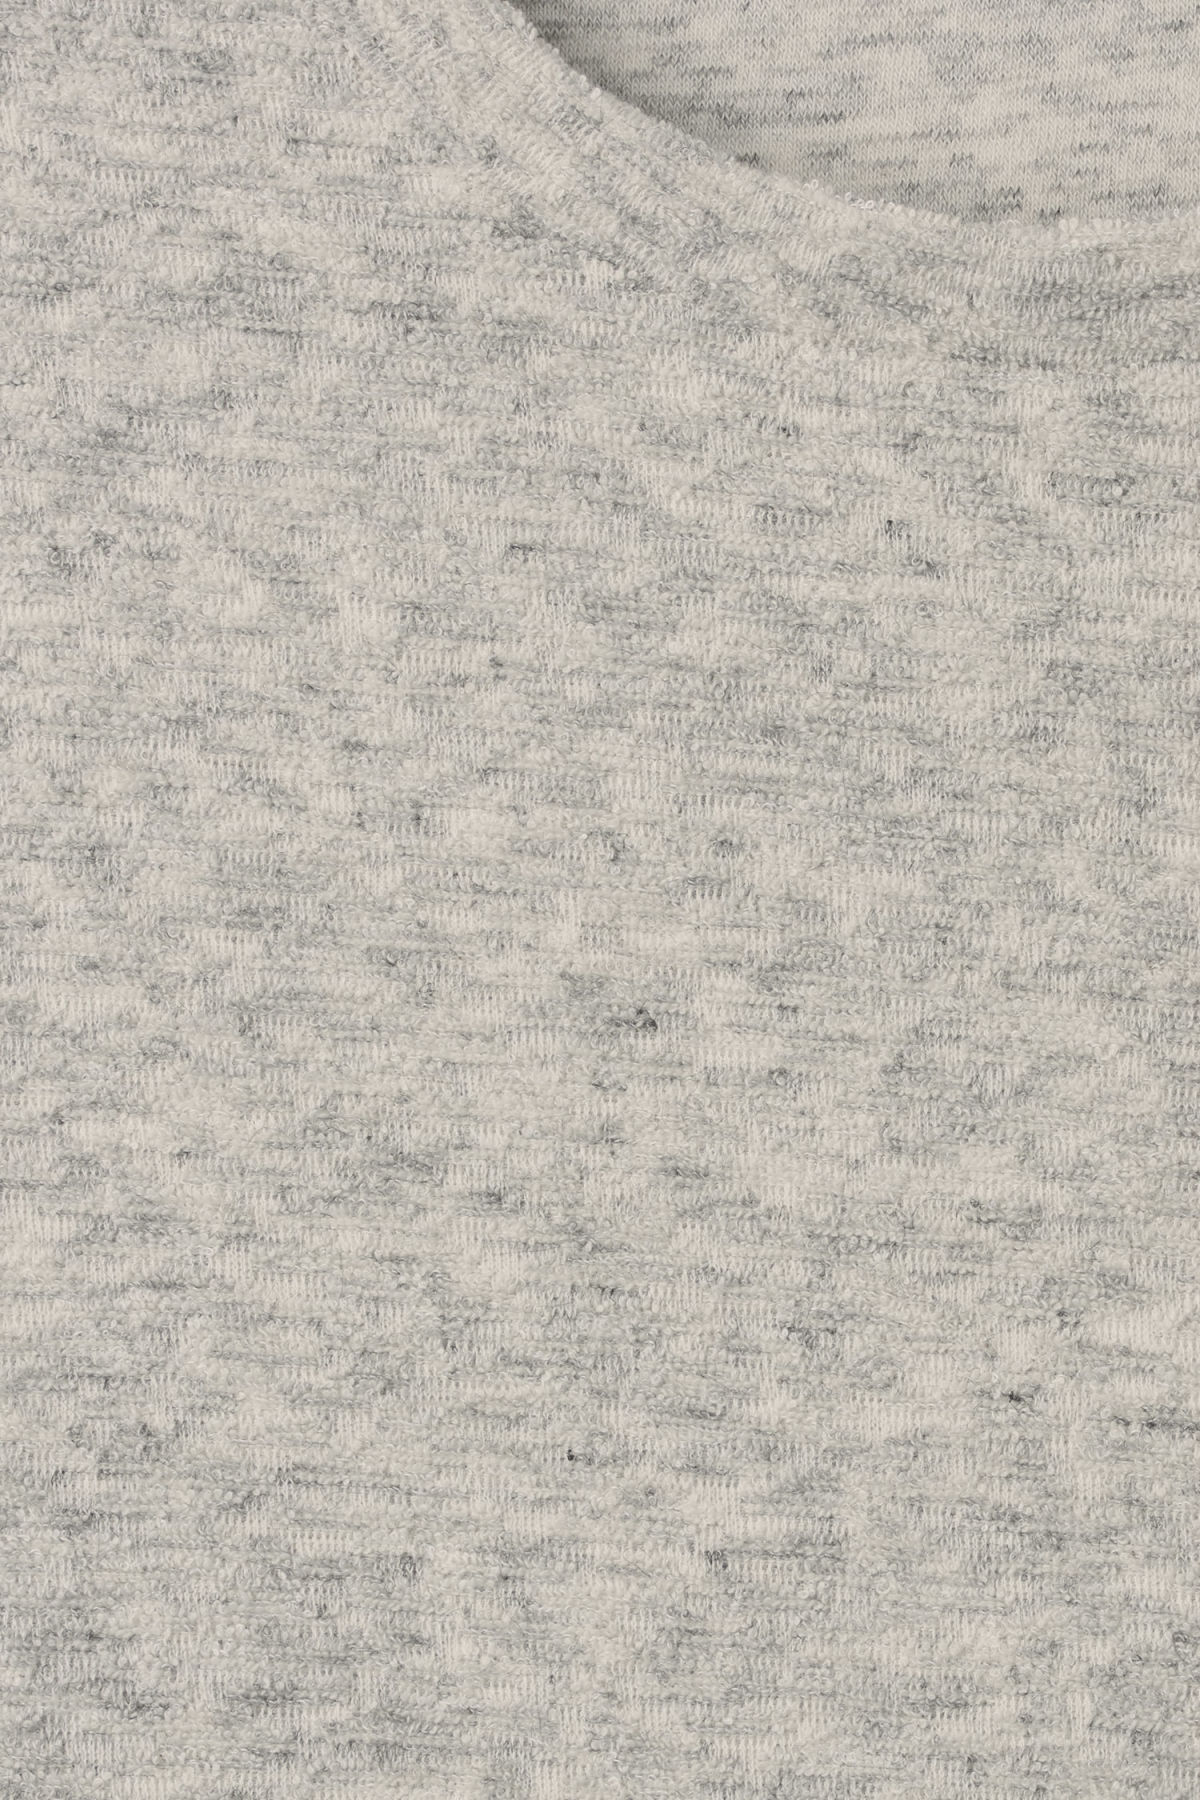 Detailed image of Weekday towel long sleeve in grey